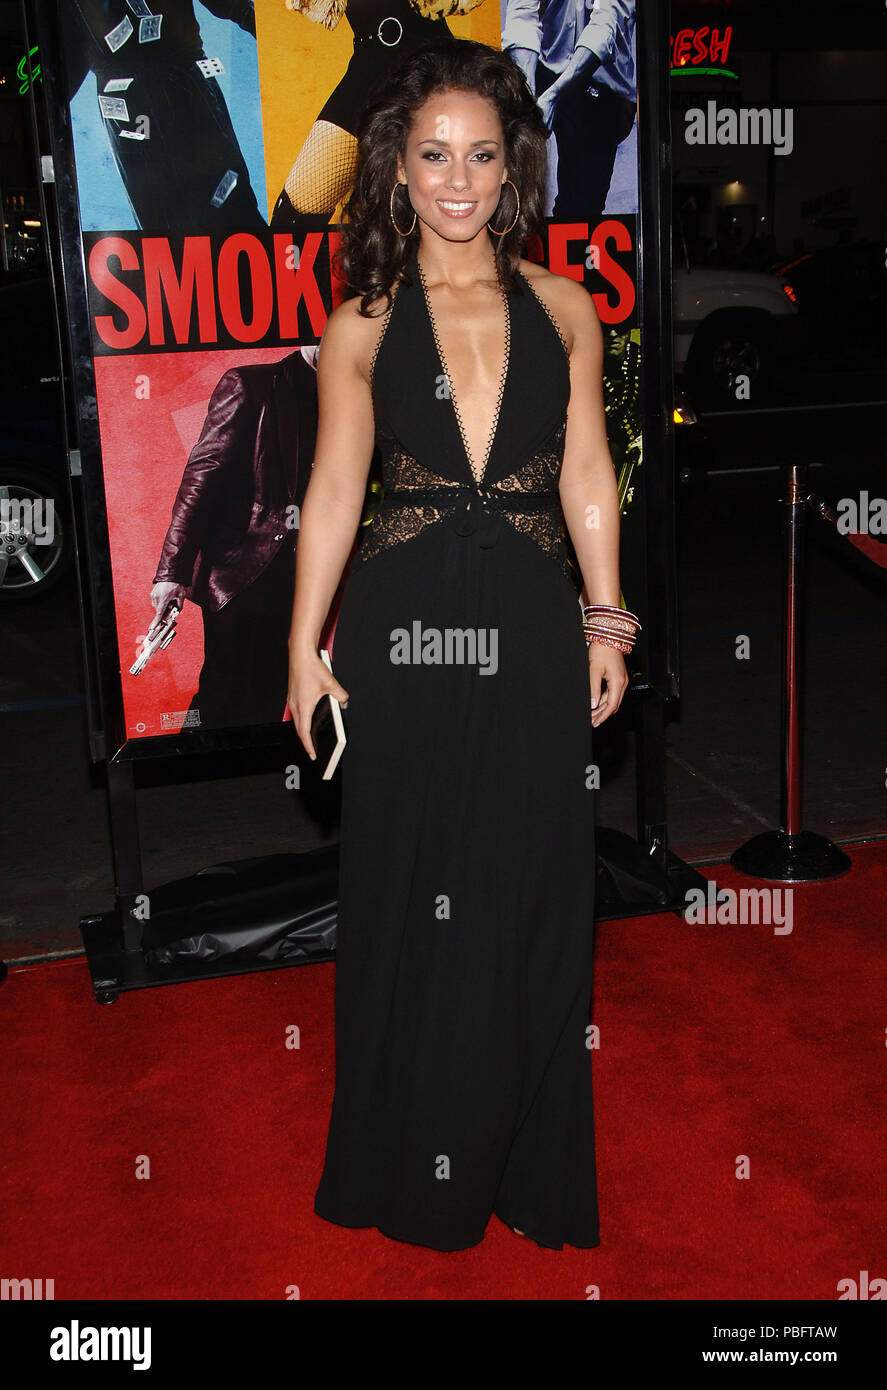 Alicia Keys arriving at the Smokin' Aces at the Chinese Theatre In Los Angeles. January 18, 2007.  eye contact smile full length black dressKeysAlicia034 Red Carpet Event, Vertical, USA, Film Industry, Celebrities,  Photography, Bestof, Arts Culture and Entertainment, Topix Celebrities fashion /  Vertical, Best of, Event in Hollywood Life - California,  Red Carpet and backstage, USA, Film Industry, Celebrities,  movie celebrities, TV celebrities, Music celebrities, Photography, Bestof, Arts Culture and Entertainment,  Topix, vertical, one person,, from the year , 2007, inquiry tsuni@Gamma-USA. - Stock Image